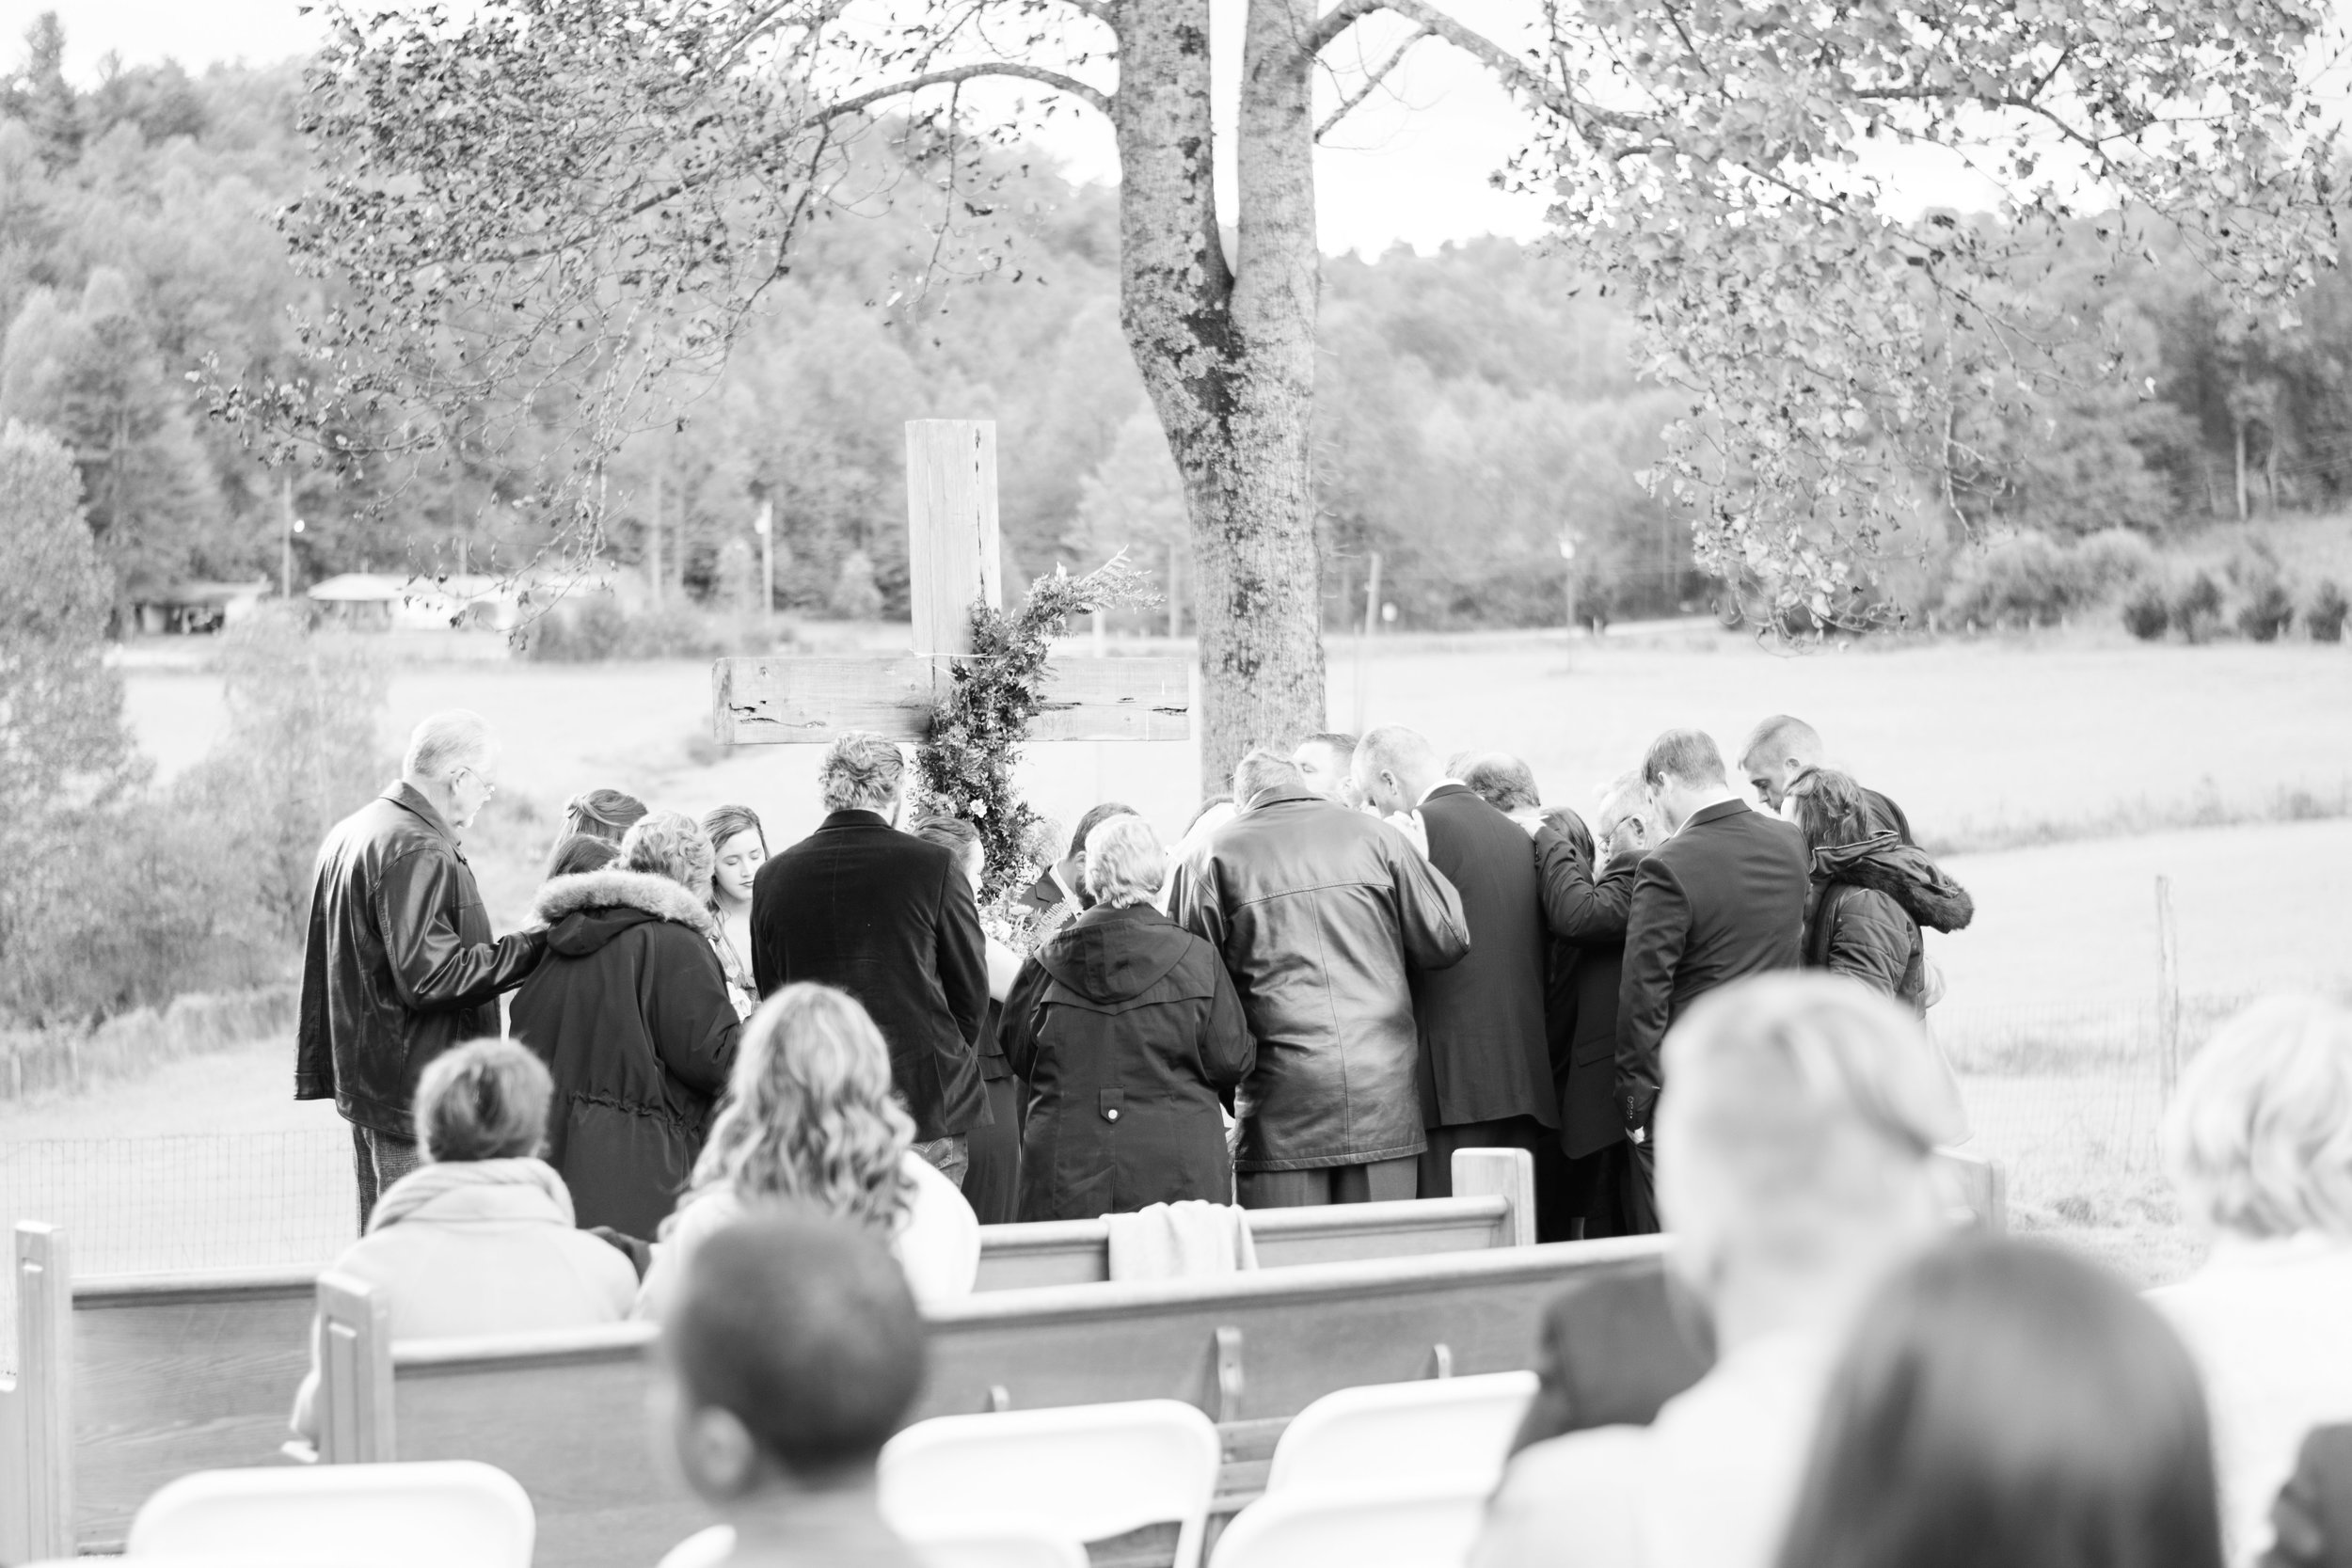 Zach & Laiken asked their families to join them in prayer during the ceremony.